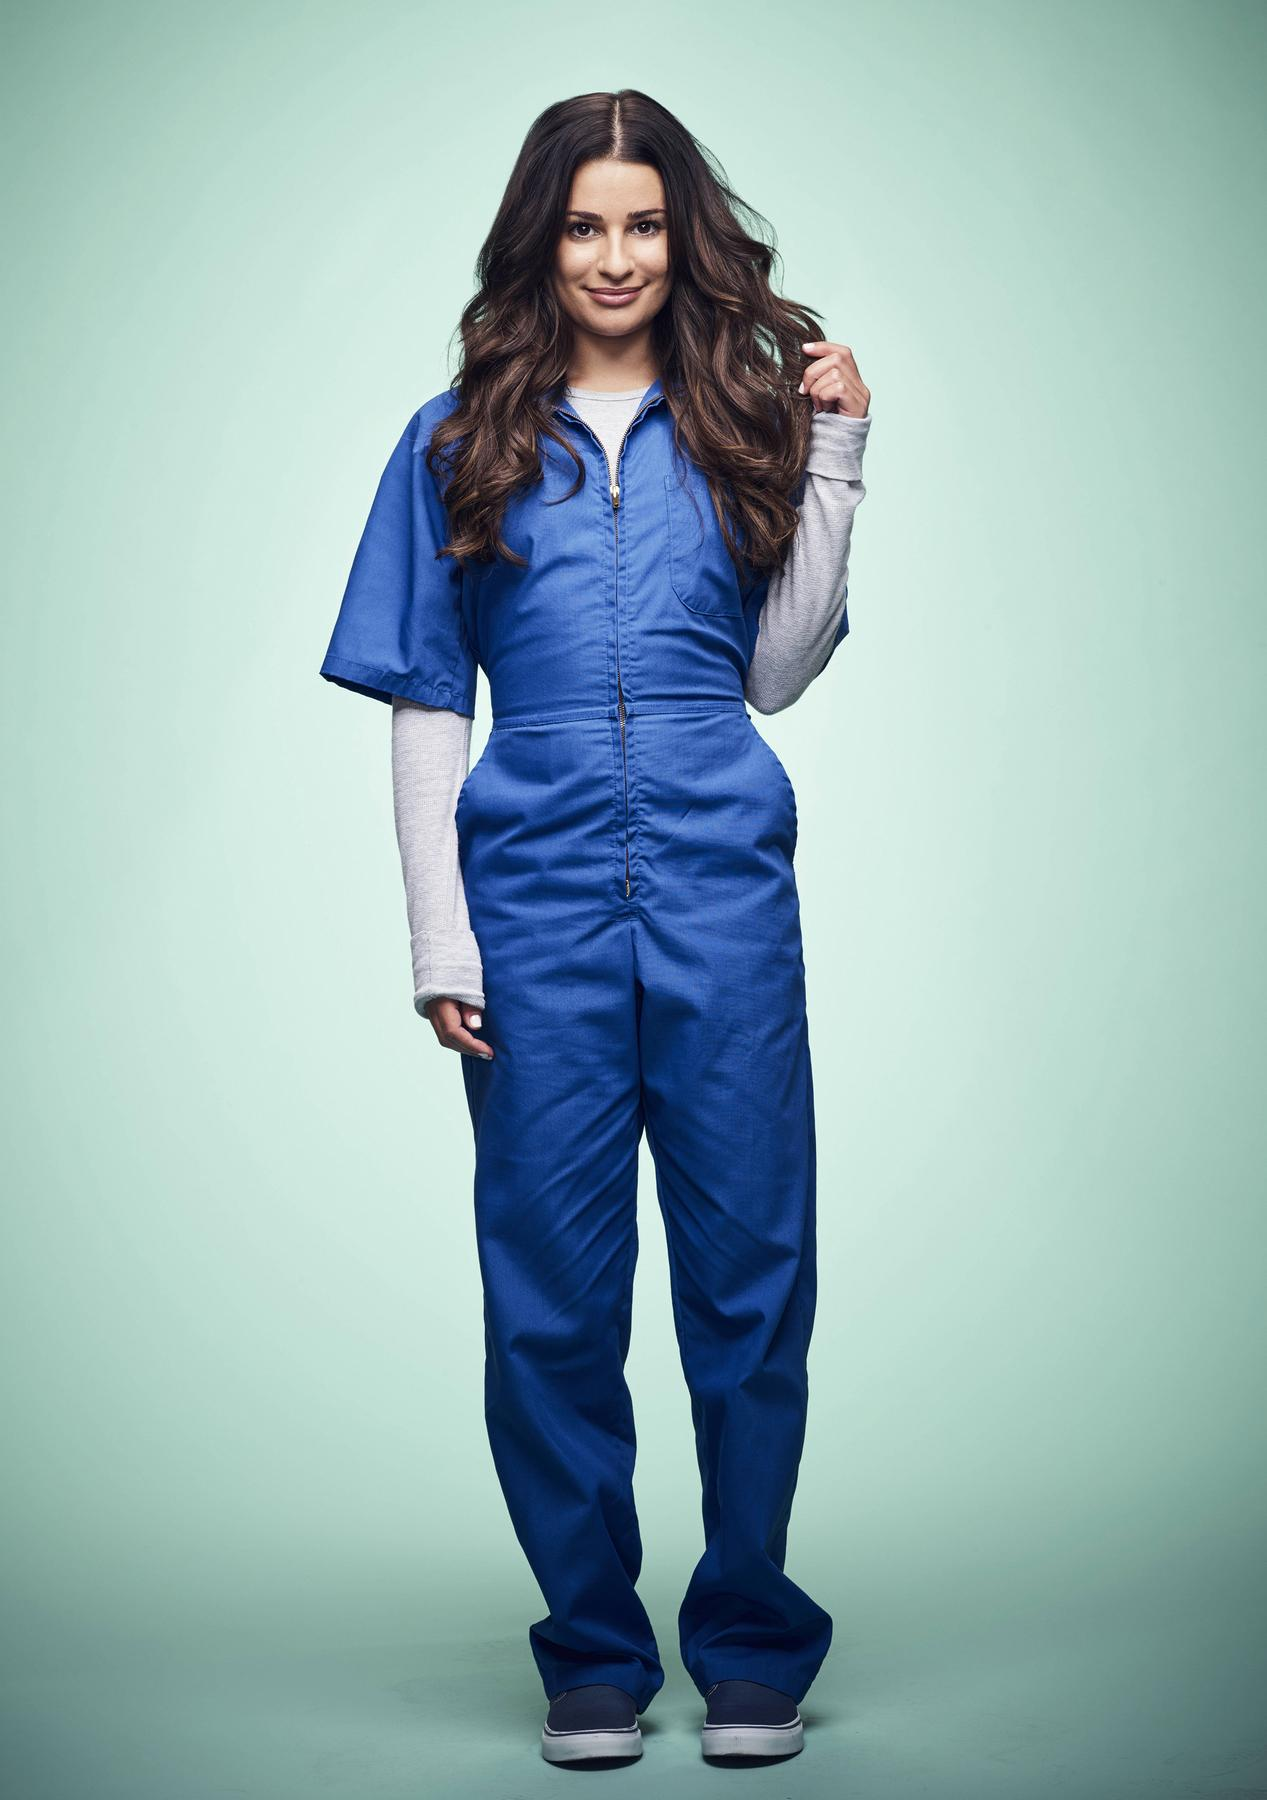 Lea Michele as Hester Ulrich